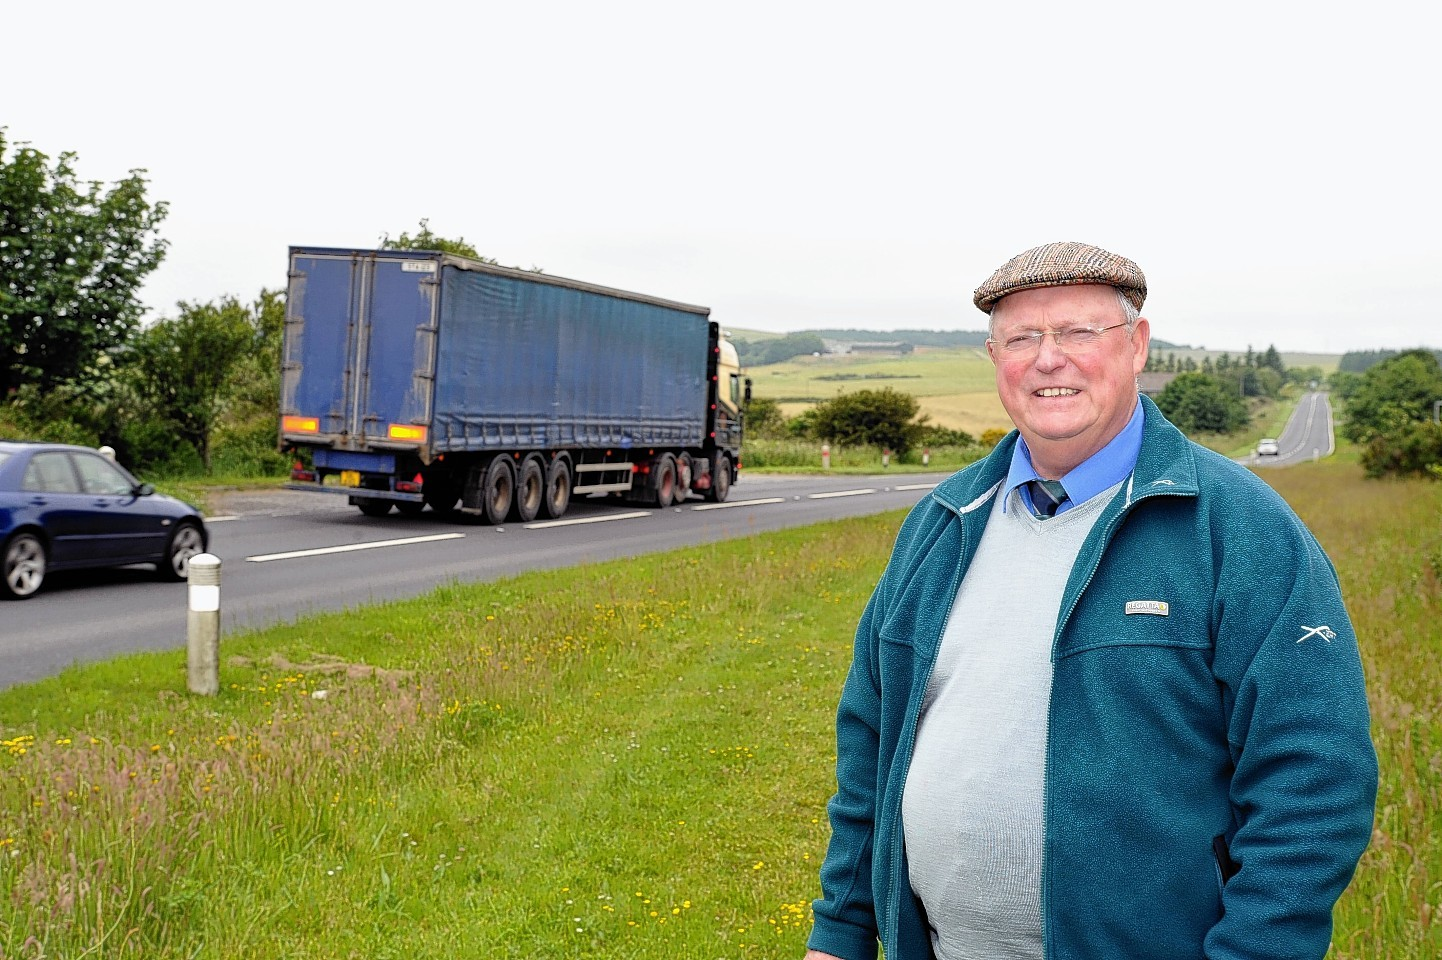 Councillor Tait says work could start in May to help Rathen's roads